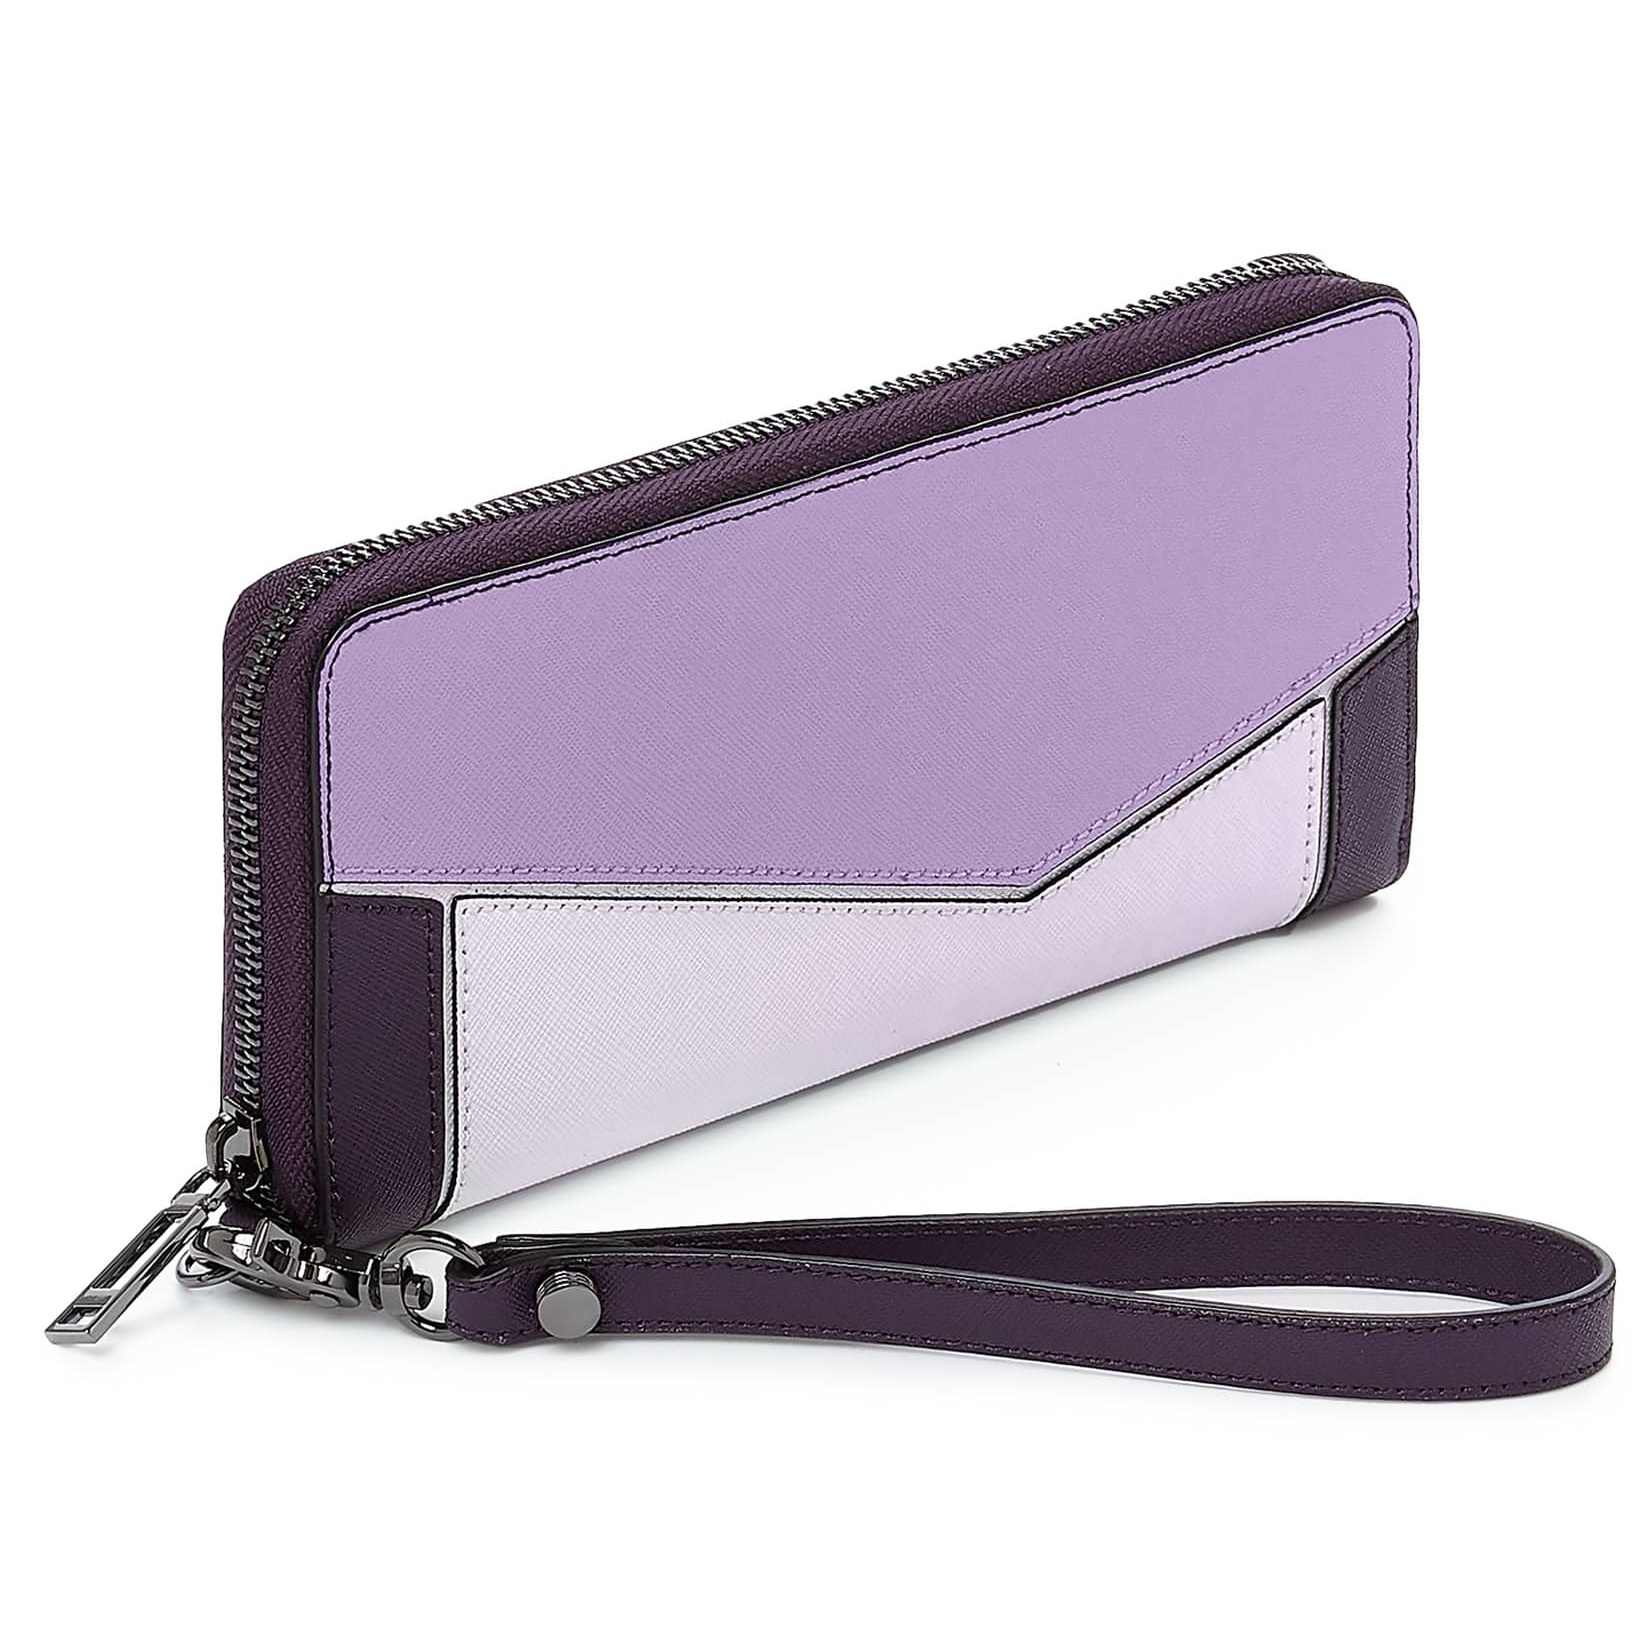 Botkier Cobble Hill Leather Wallet Purple